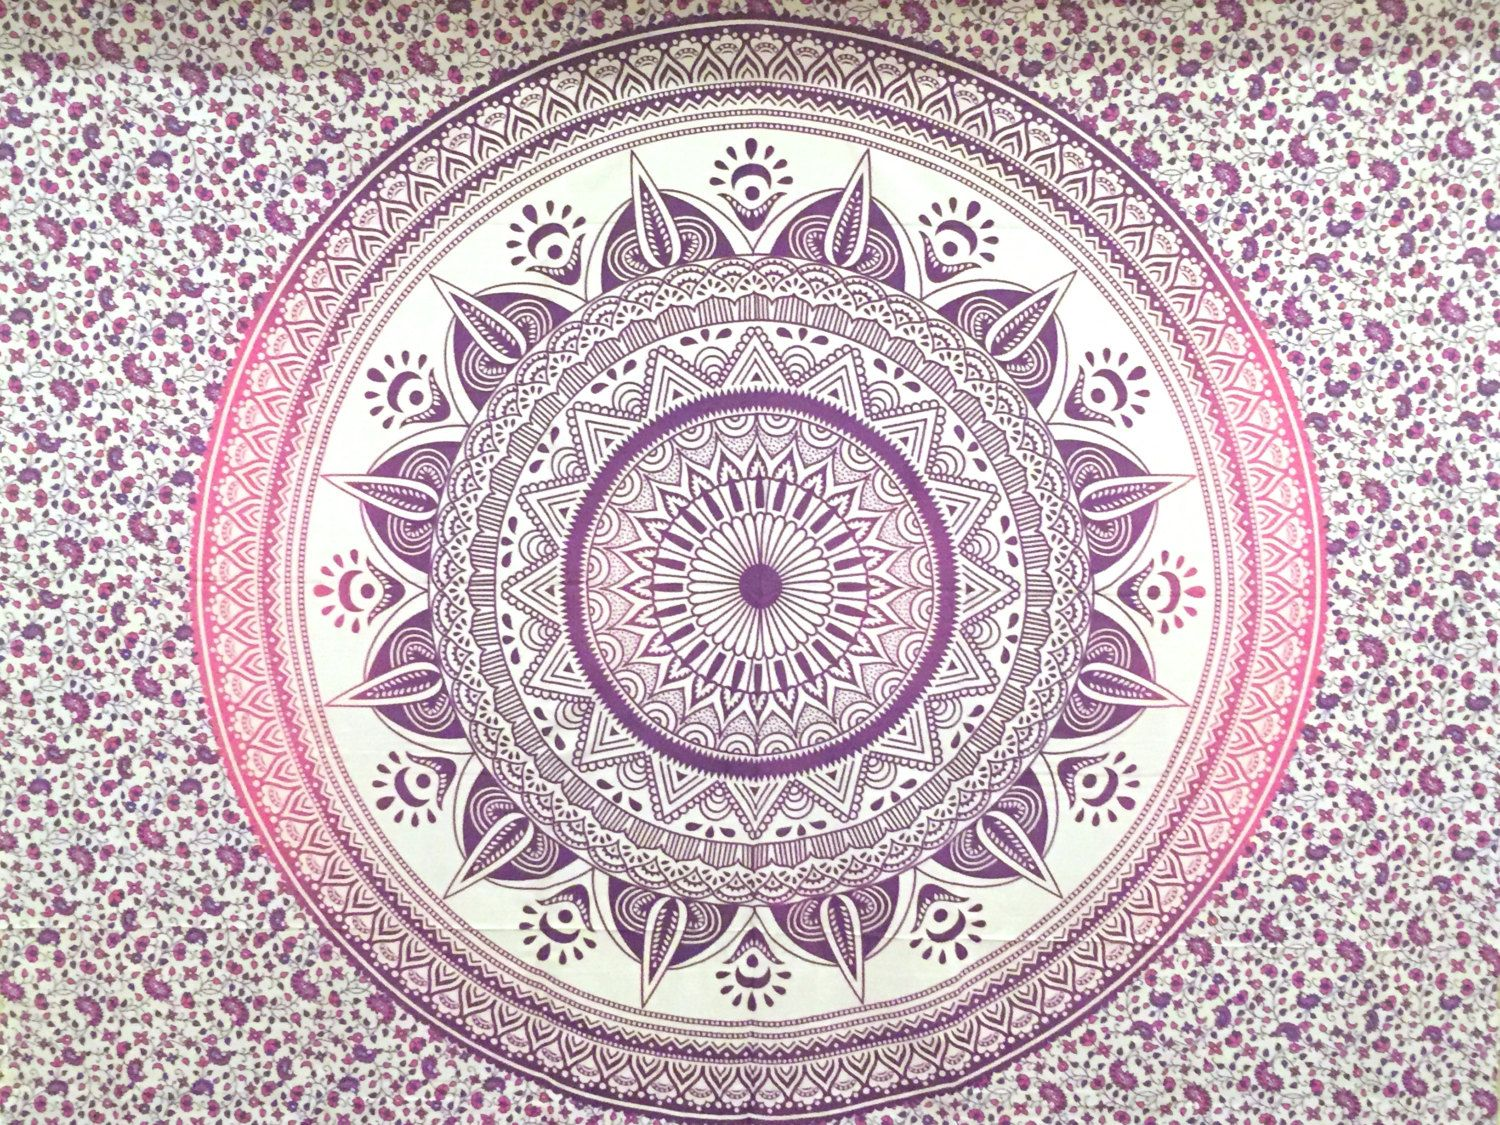 Queen size mandala chakra tapestry boho wall decor star beach queen size mandala chakra tapestry boho wall decor star beach blanket bed sheet dorm room decor amipublicfo Choice Image